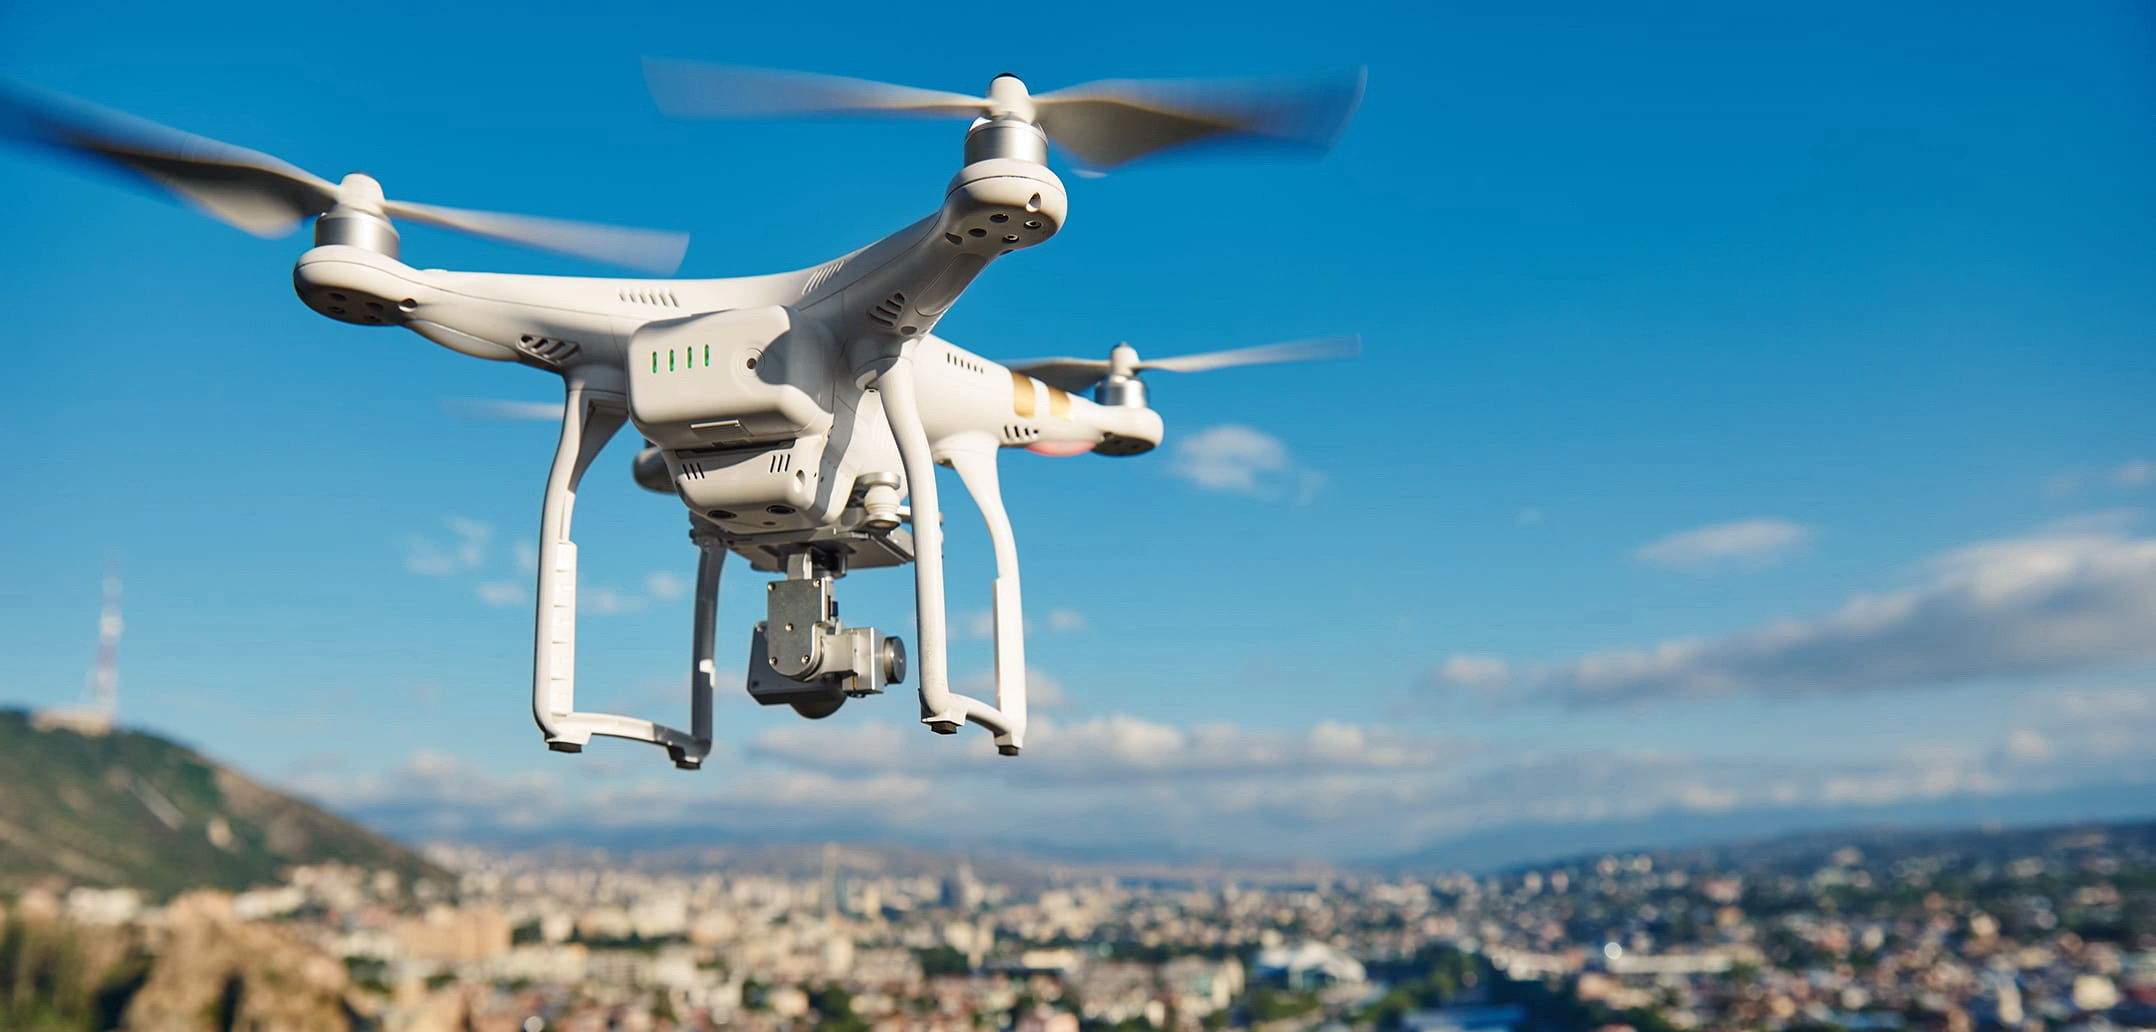 Anti-drone protection of densely populated areas